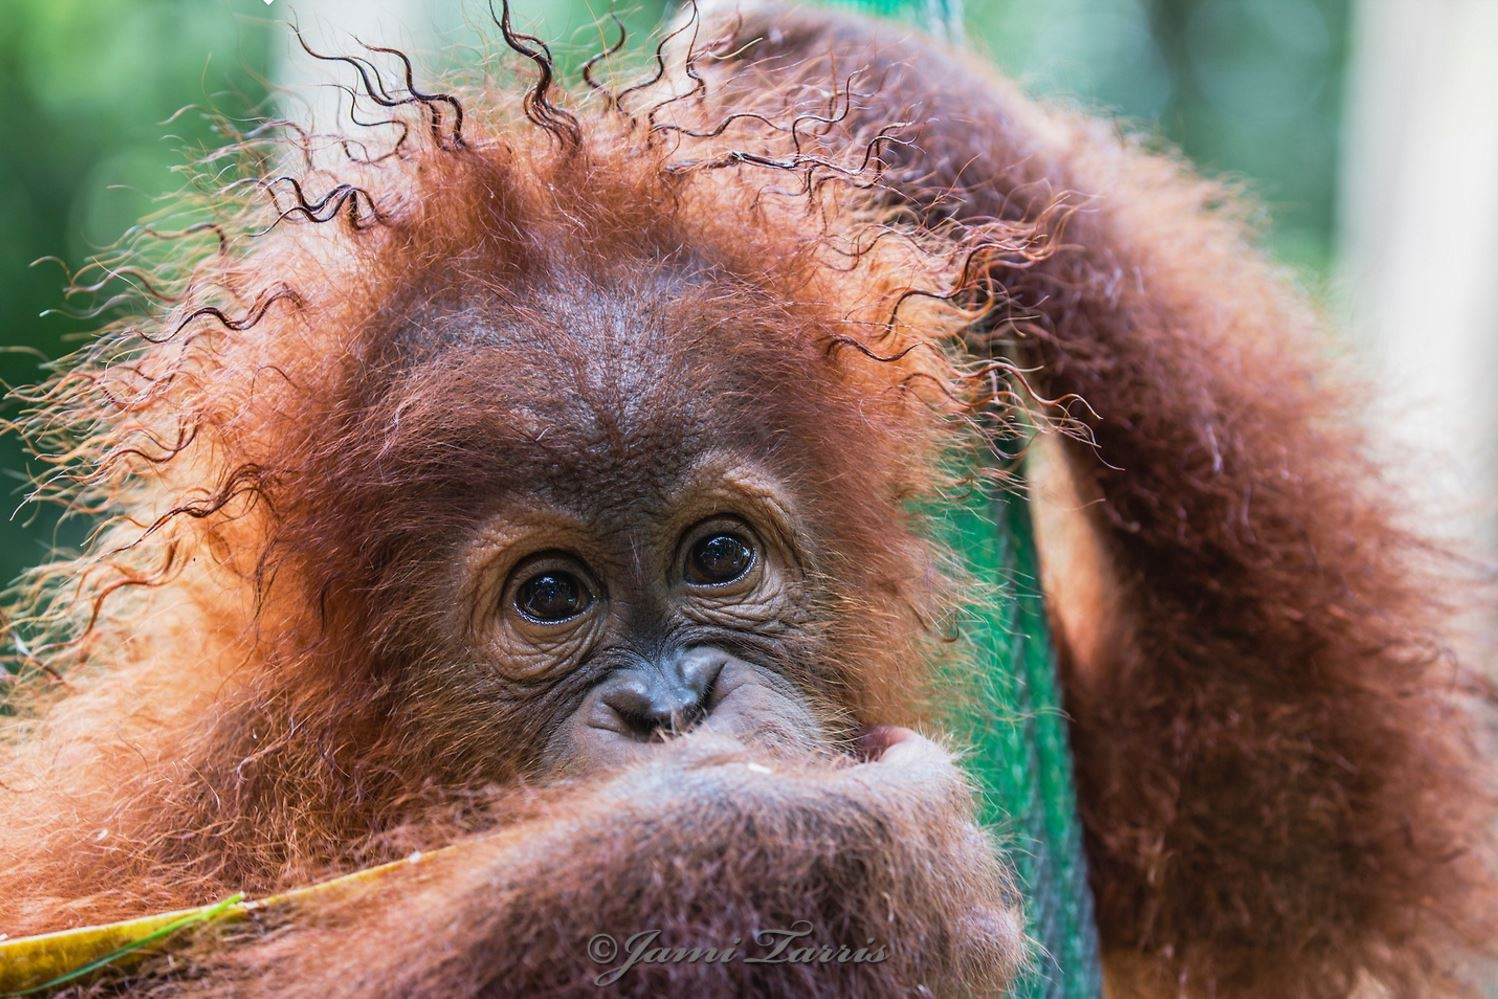 Image: Baby Orangutan with Rasta Hair